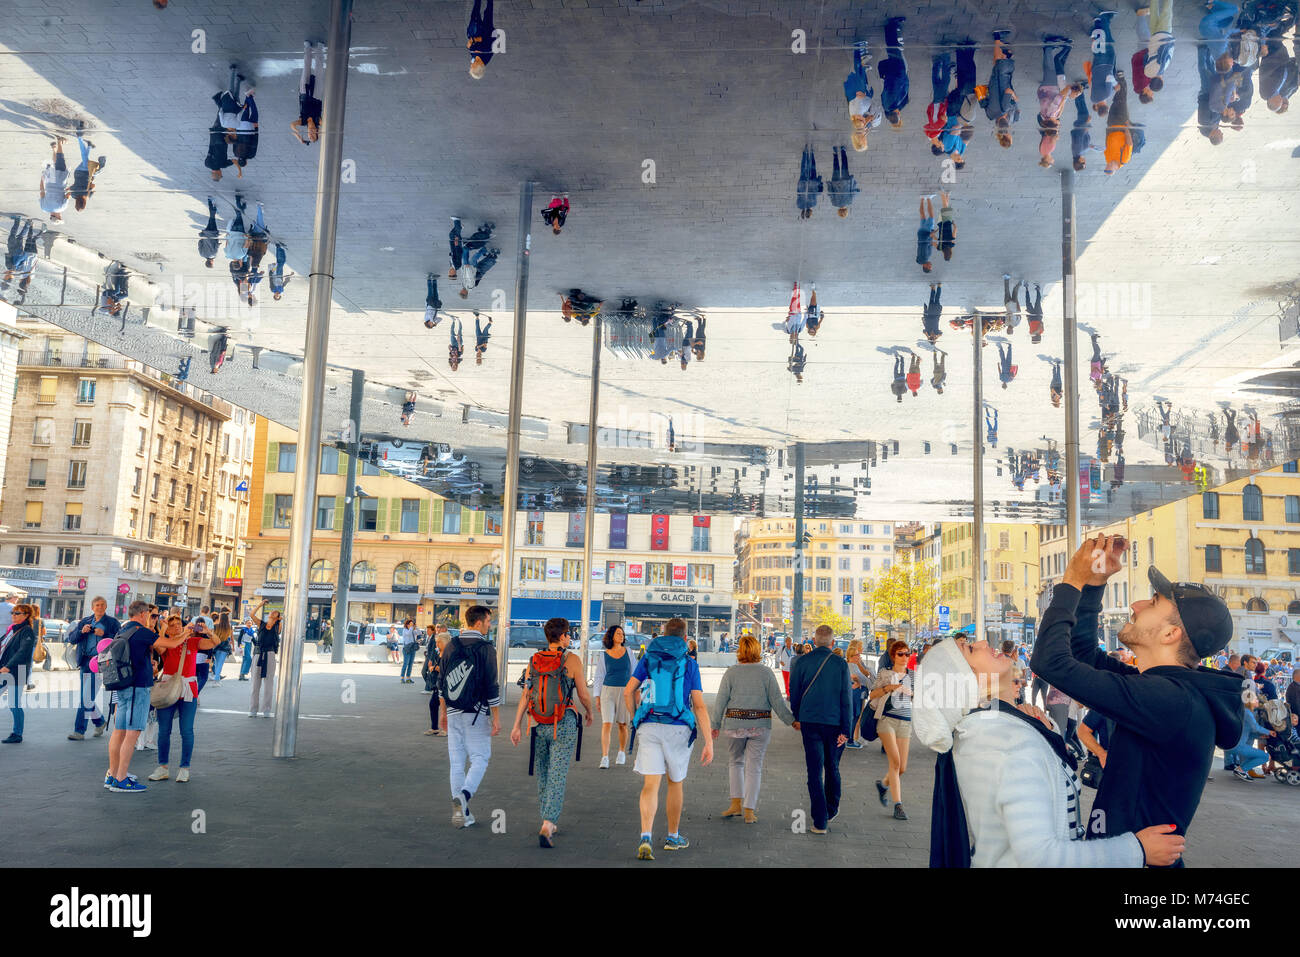 View of modern mirrored awning at Vieux Port with people walking and looking at their reflection. Marseille, France, - Stock Image